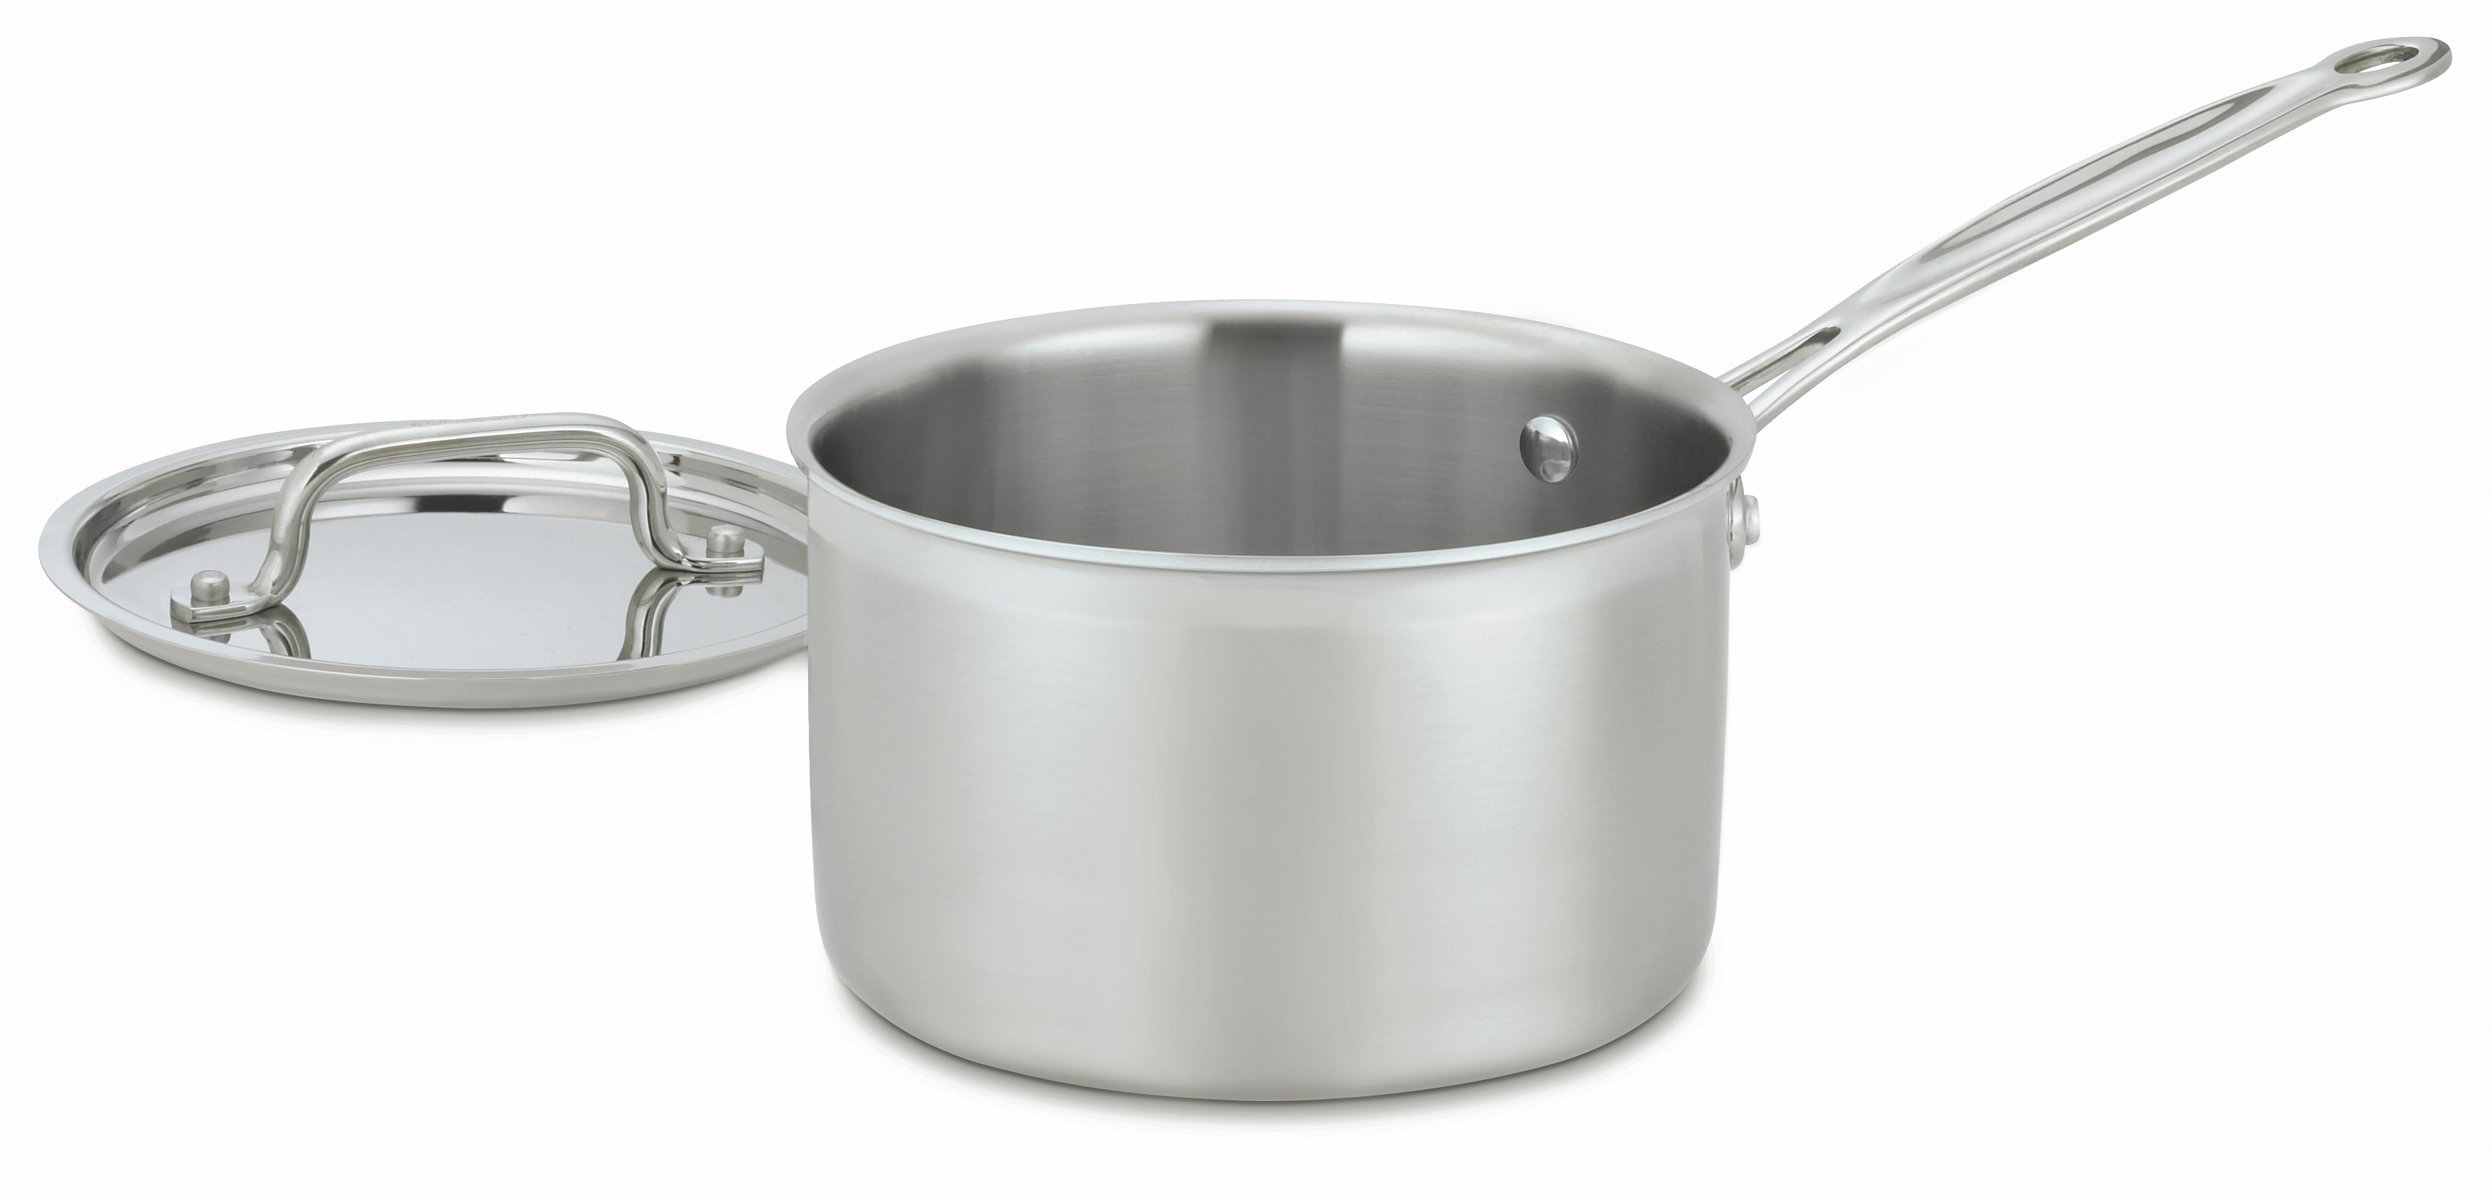 Cuisinart MCP193-18 MultiClad Pro Stainless-Steel 3-Quart Saucepan with Cover